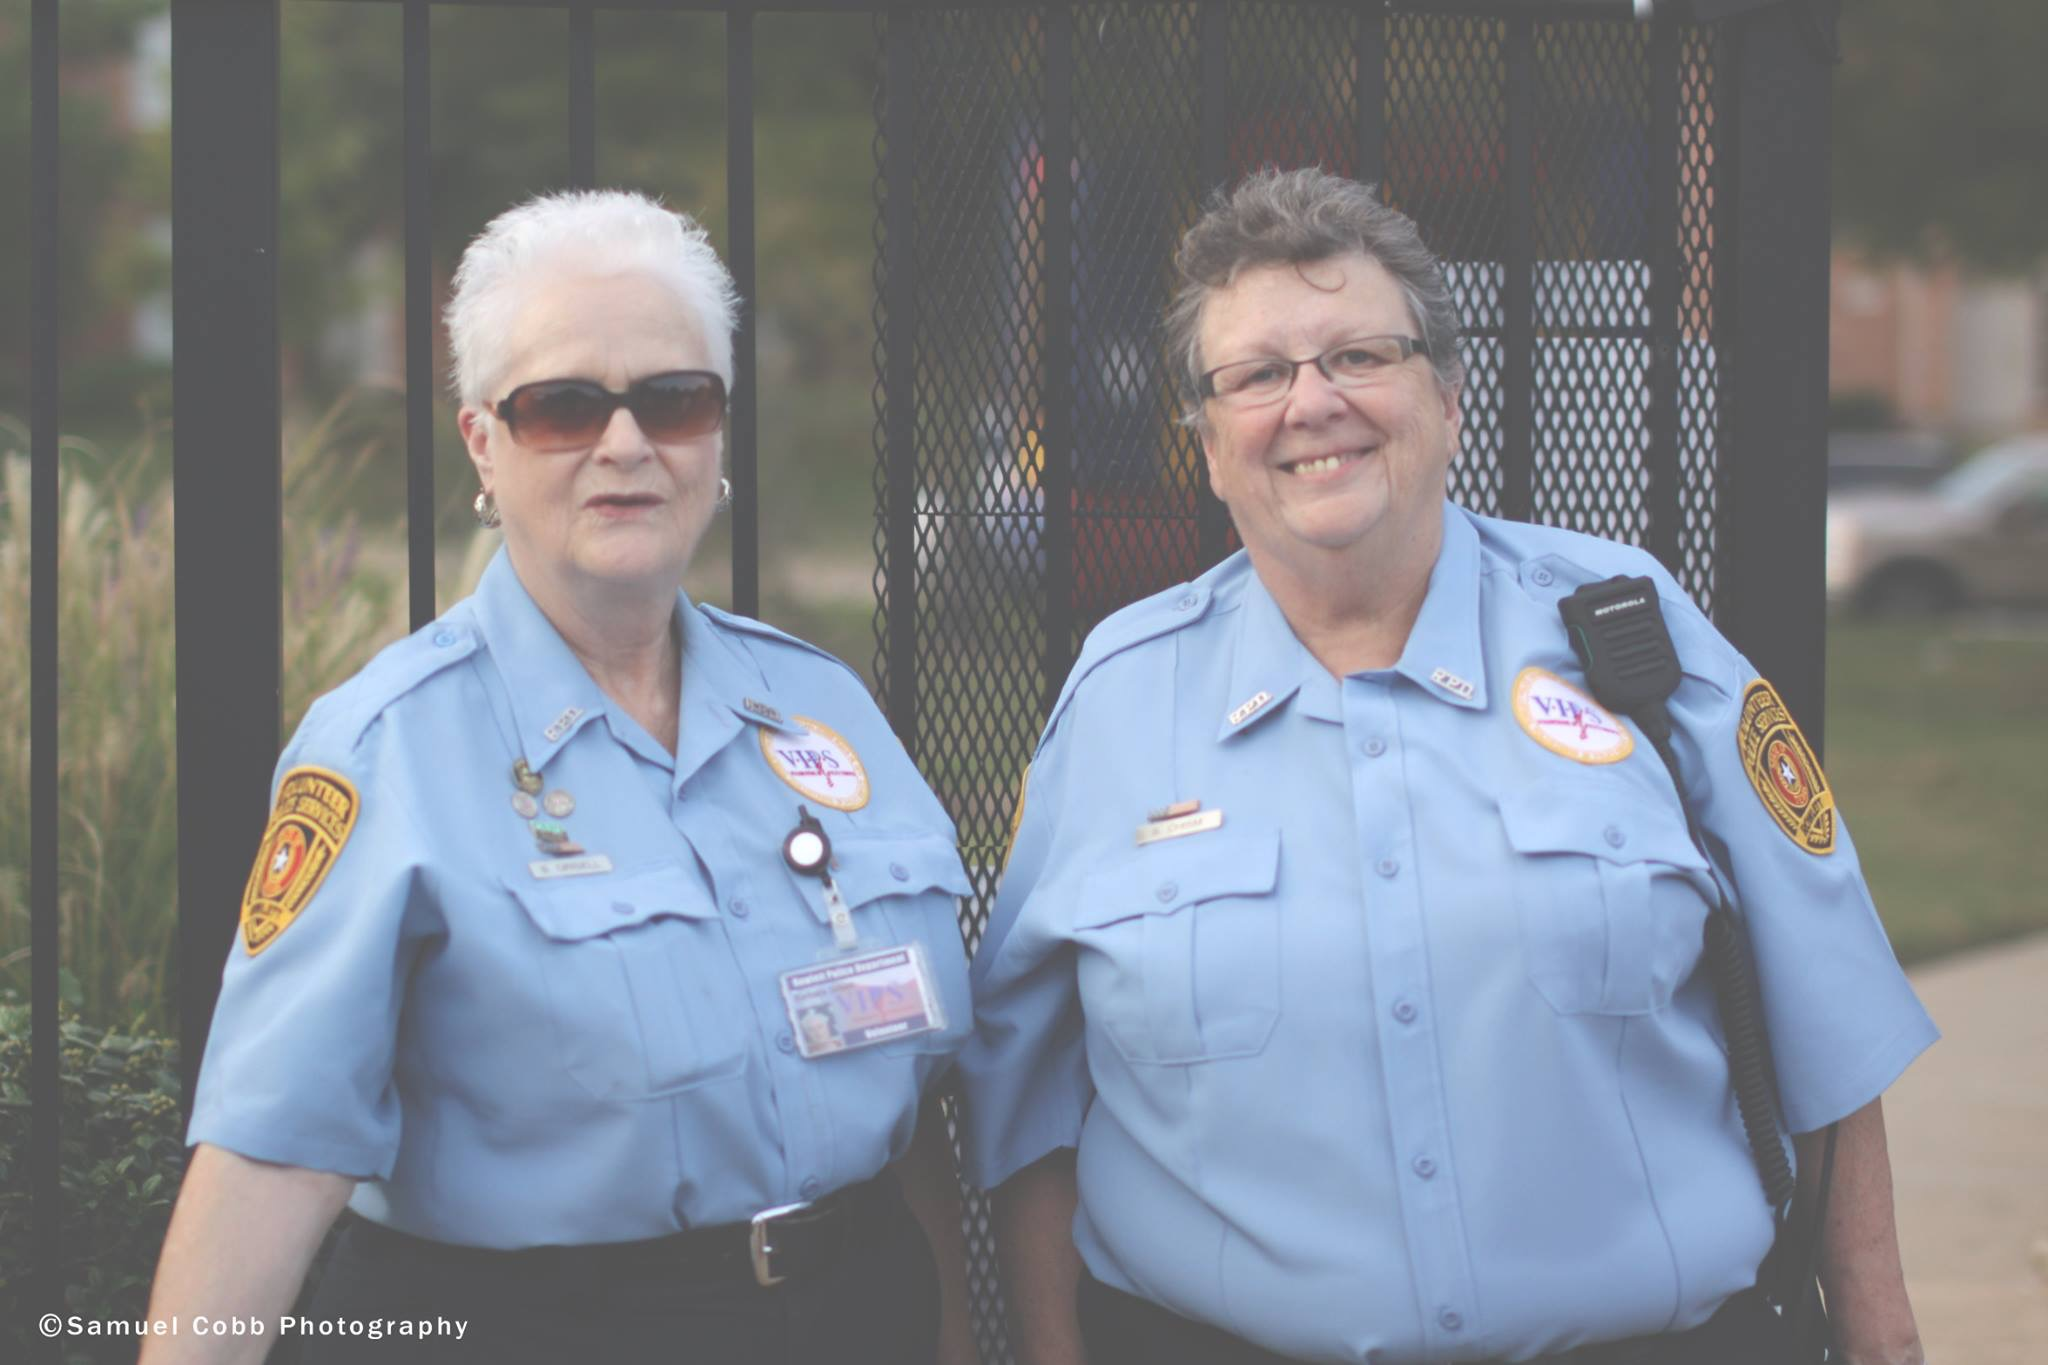 Two female police officers in uniform